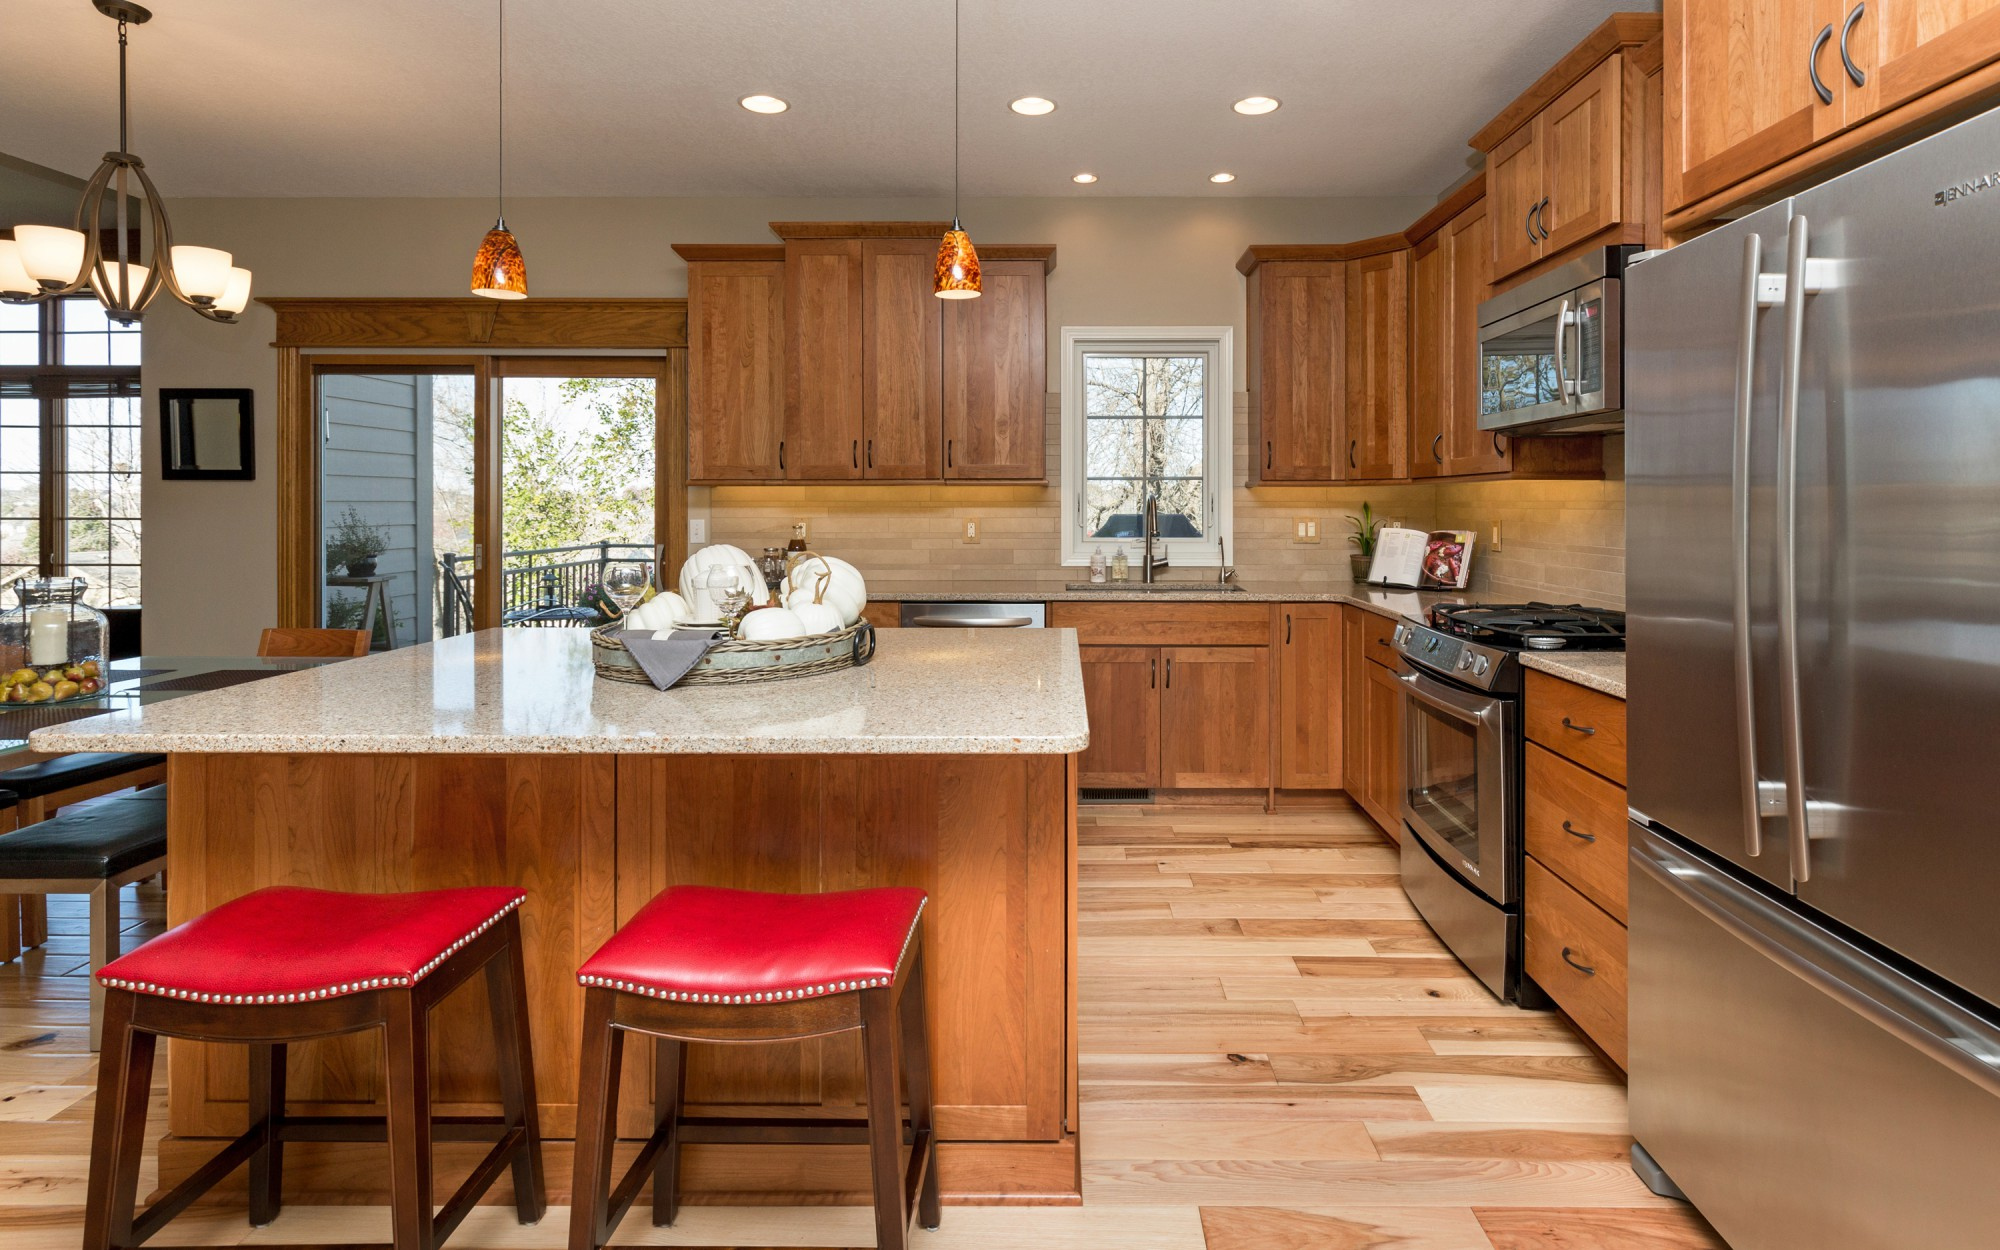 Kitchen remodeling bright idea ideas for small kitchen for Bath remodel green bay wi